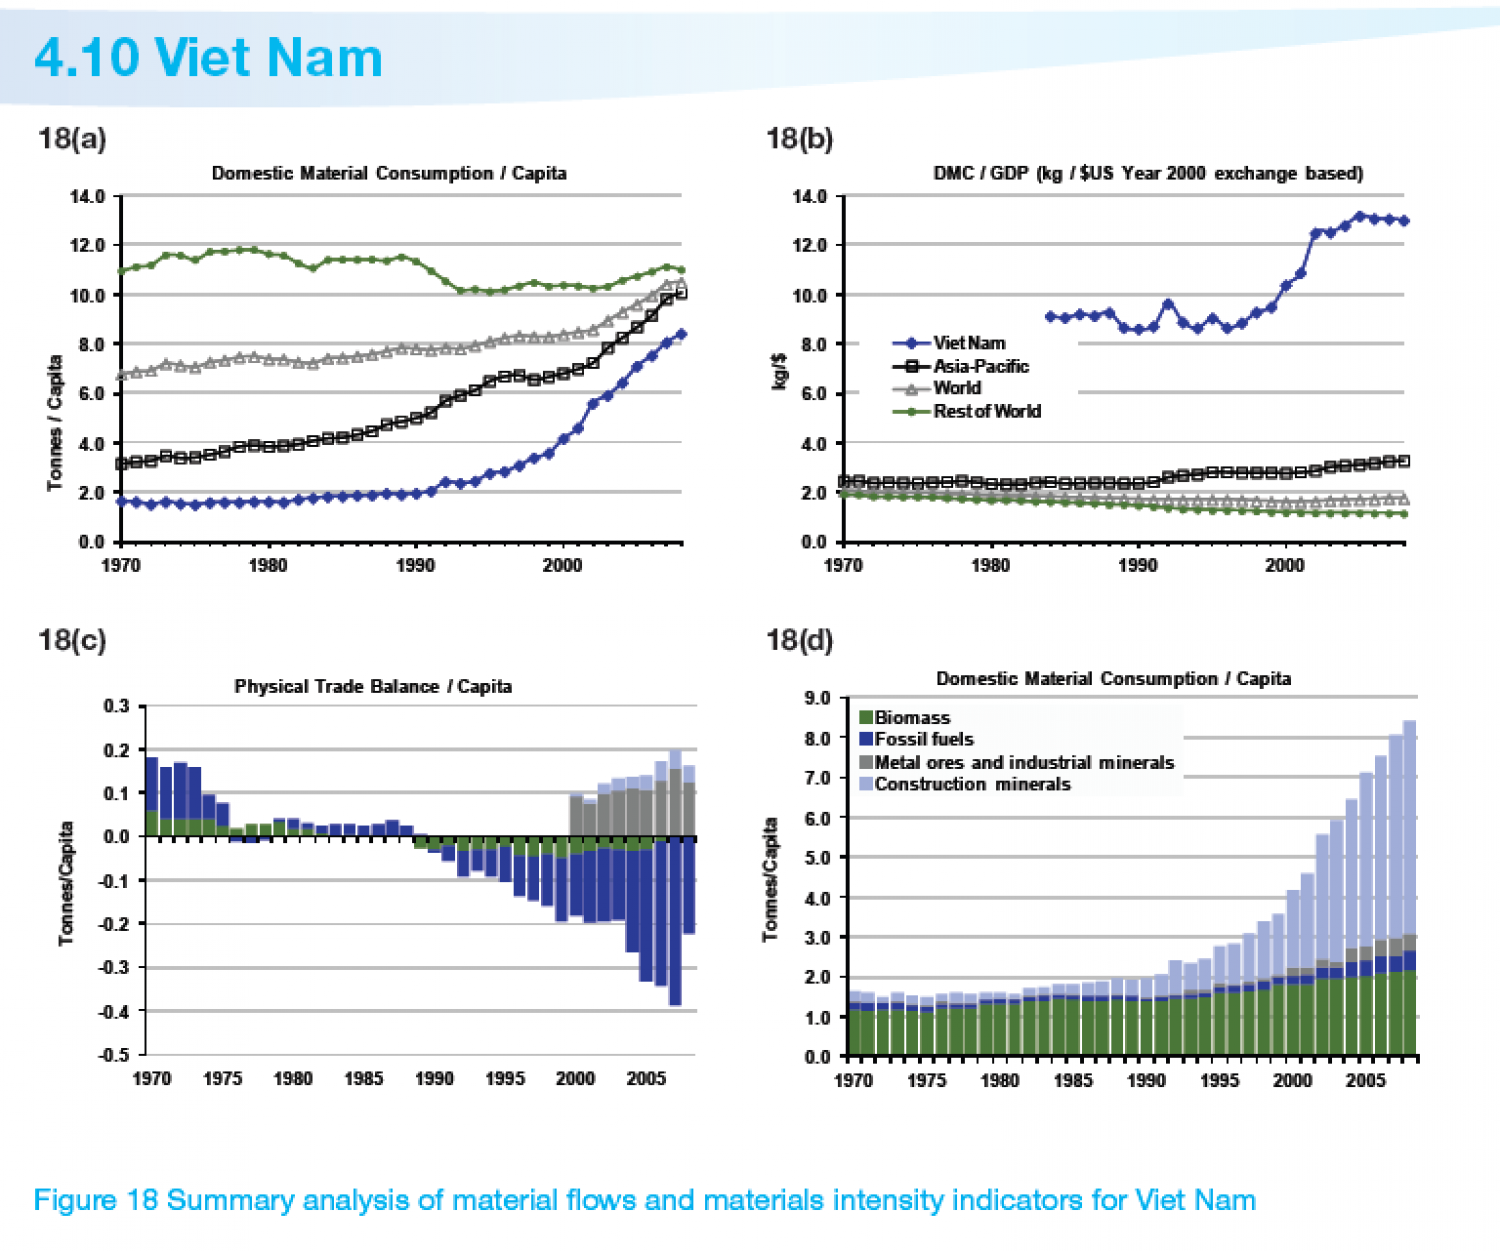 VIET NAM : Summary analysis of material flows and materials intensity indicators Infographic